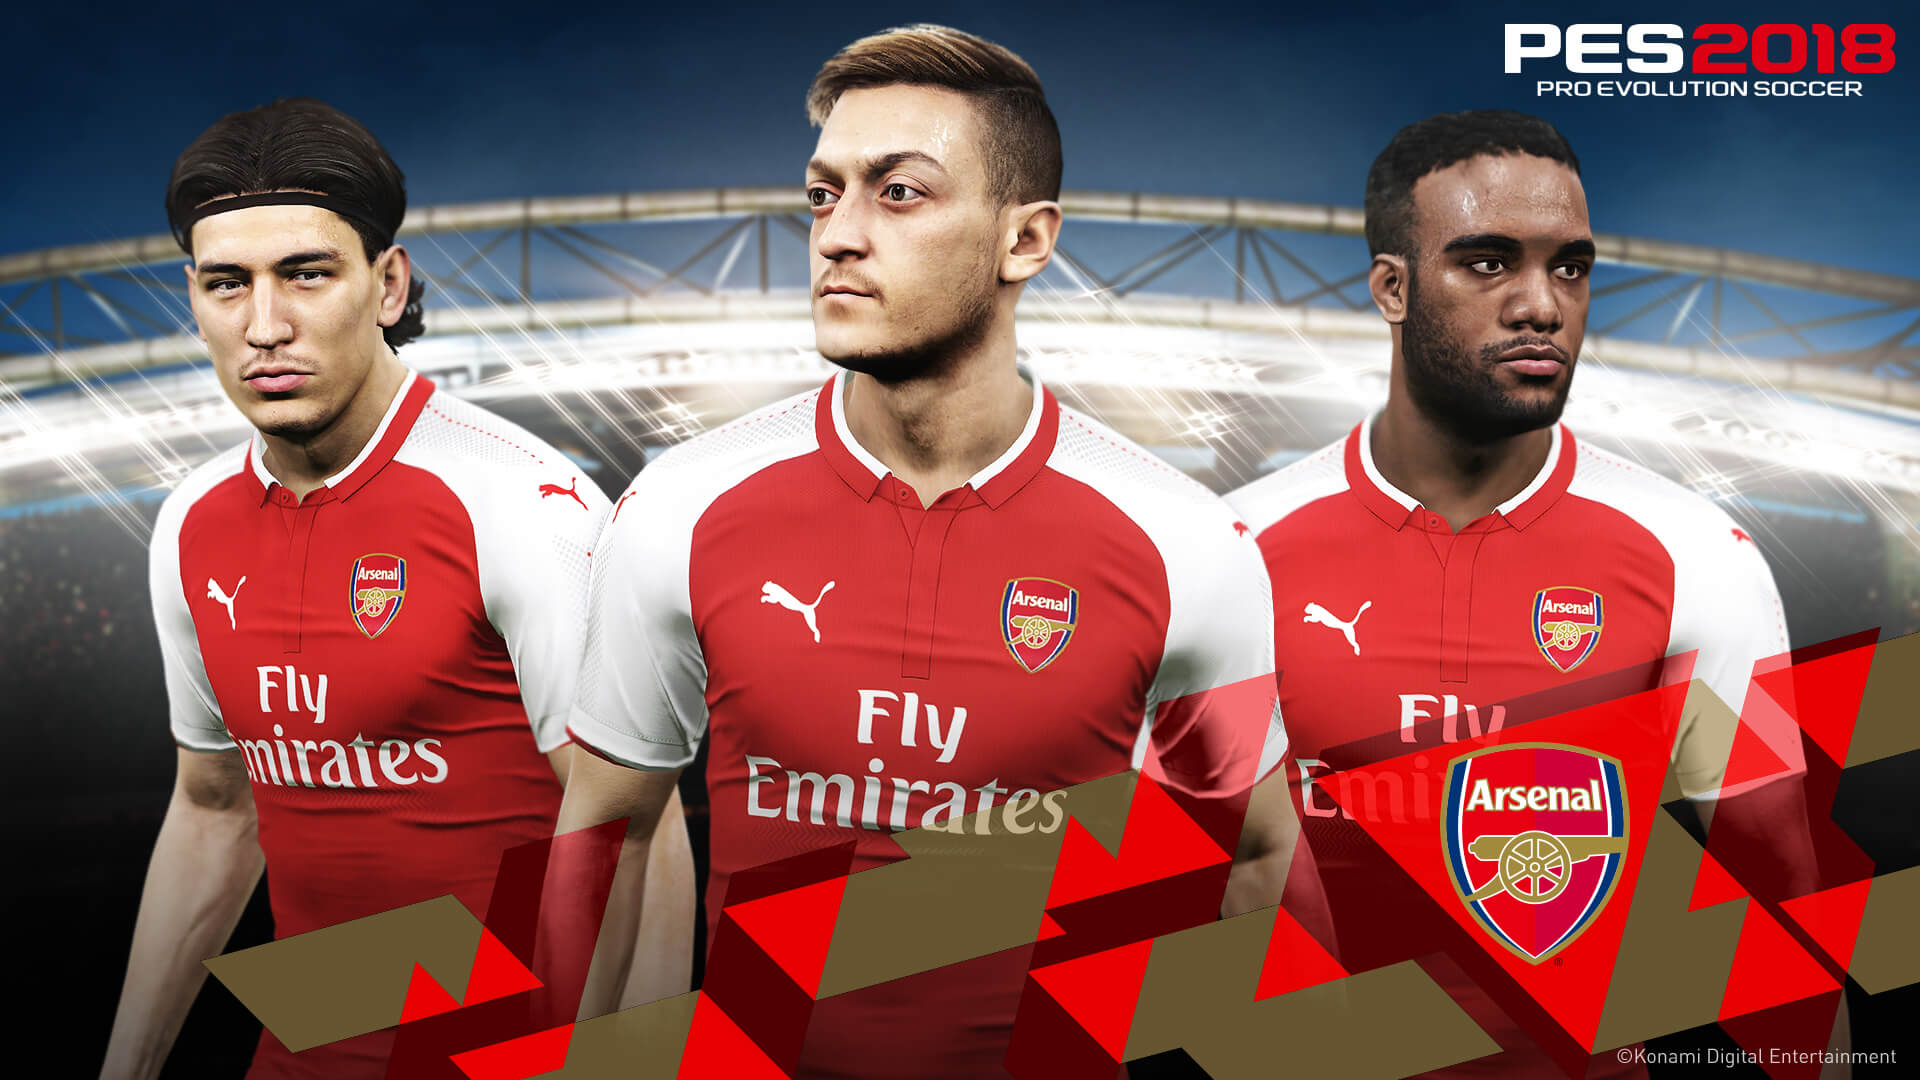 a7f2b6d46 Arsenal And Konami Team Up For Pro Evolution Soccer